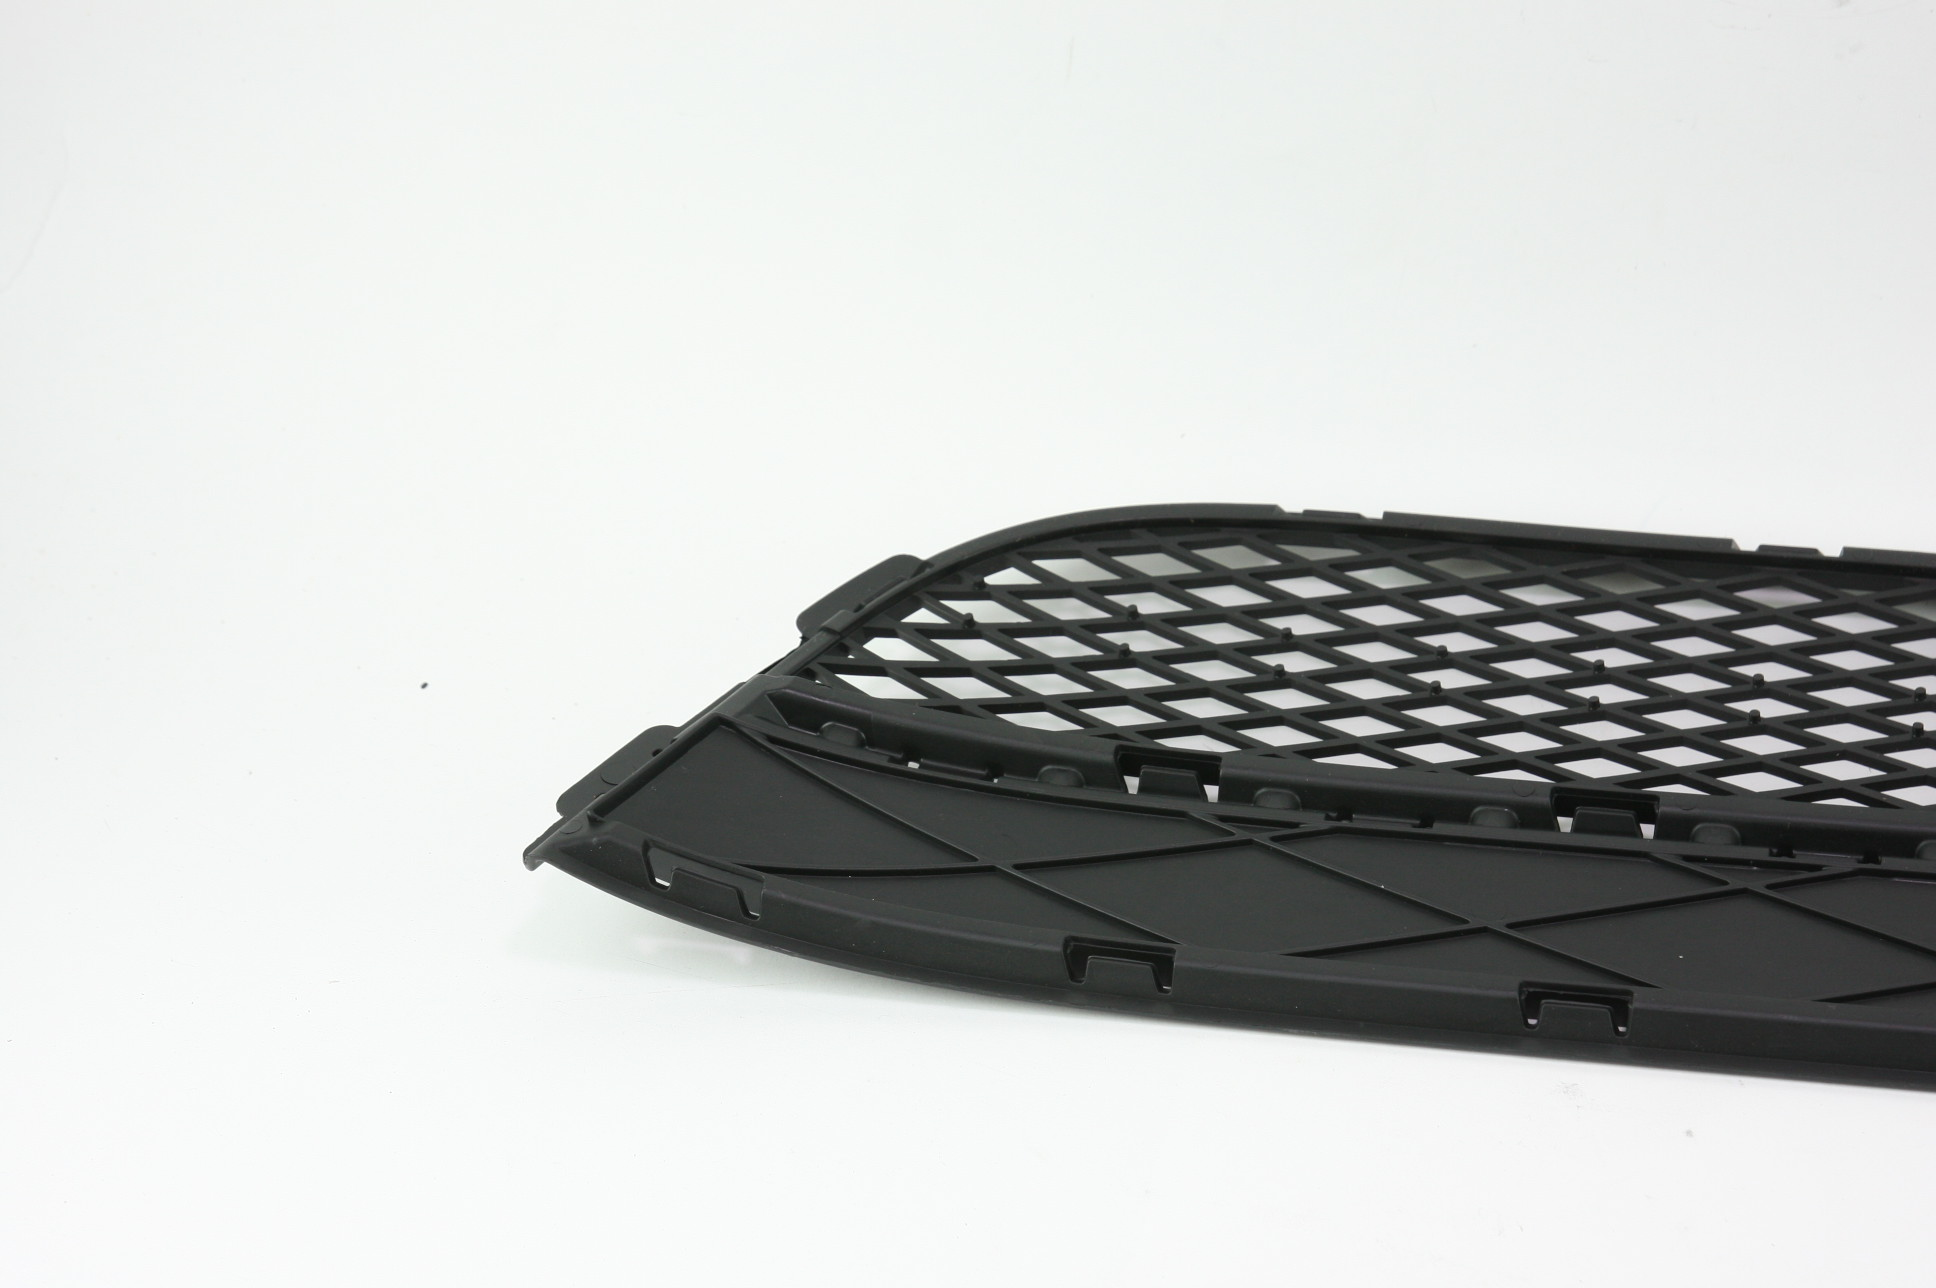 New OEM 5N08536779B9 Volkswagen VW Tiguan Front Bumper Lower Bottom Grille Grill - image 7